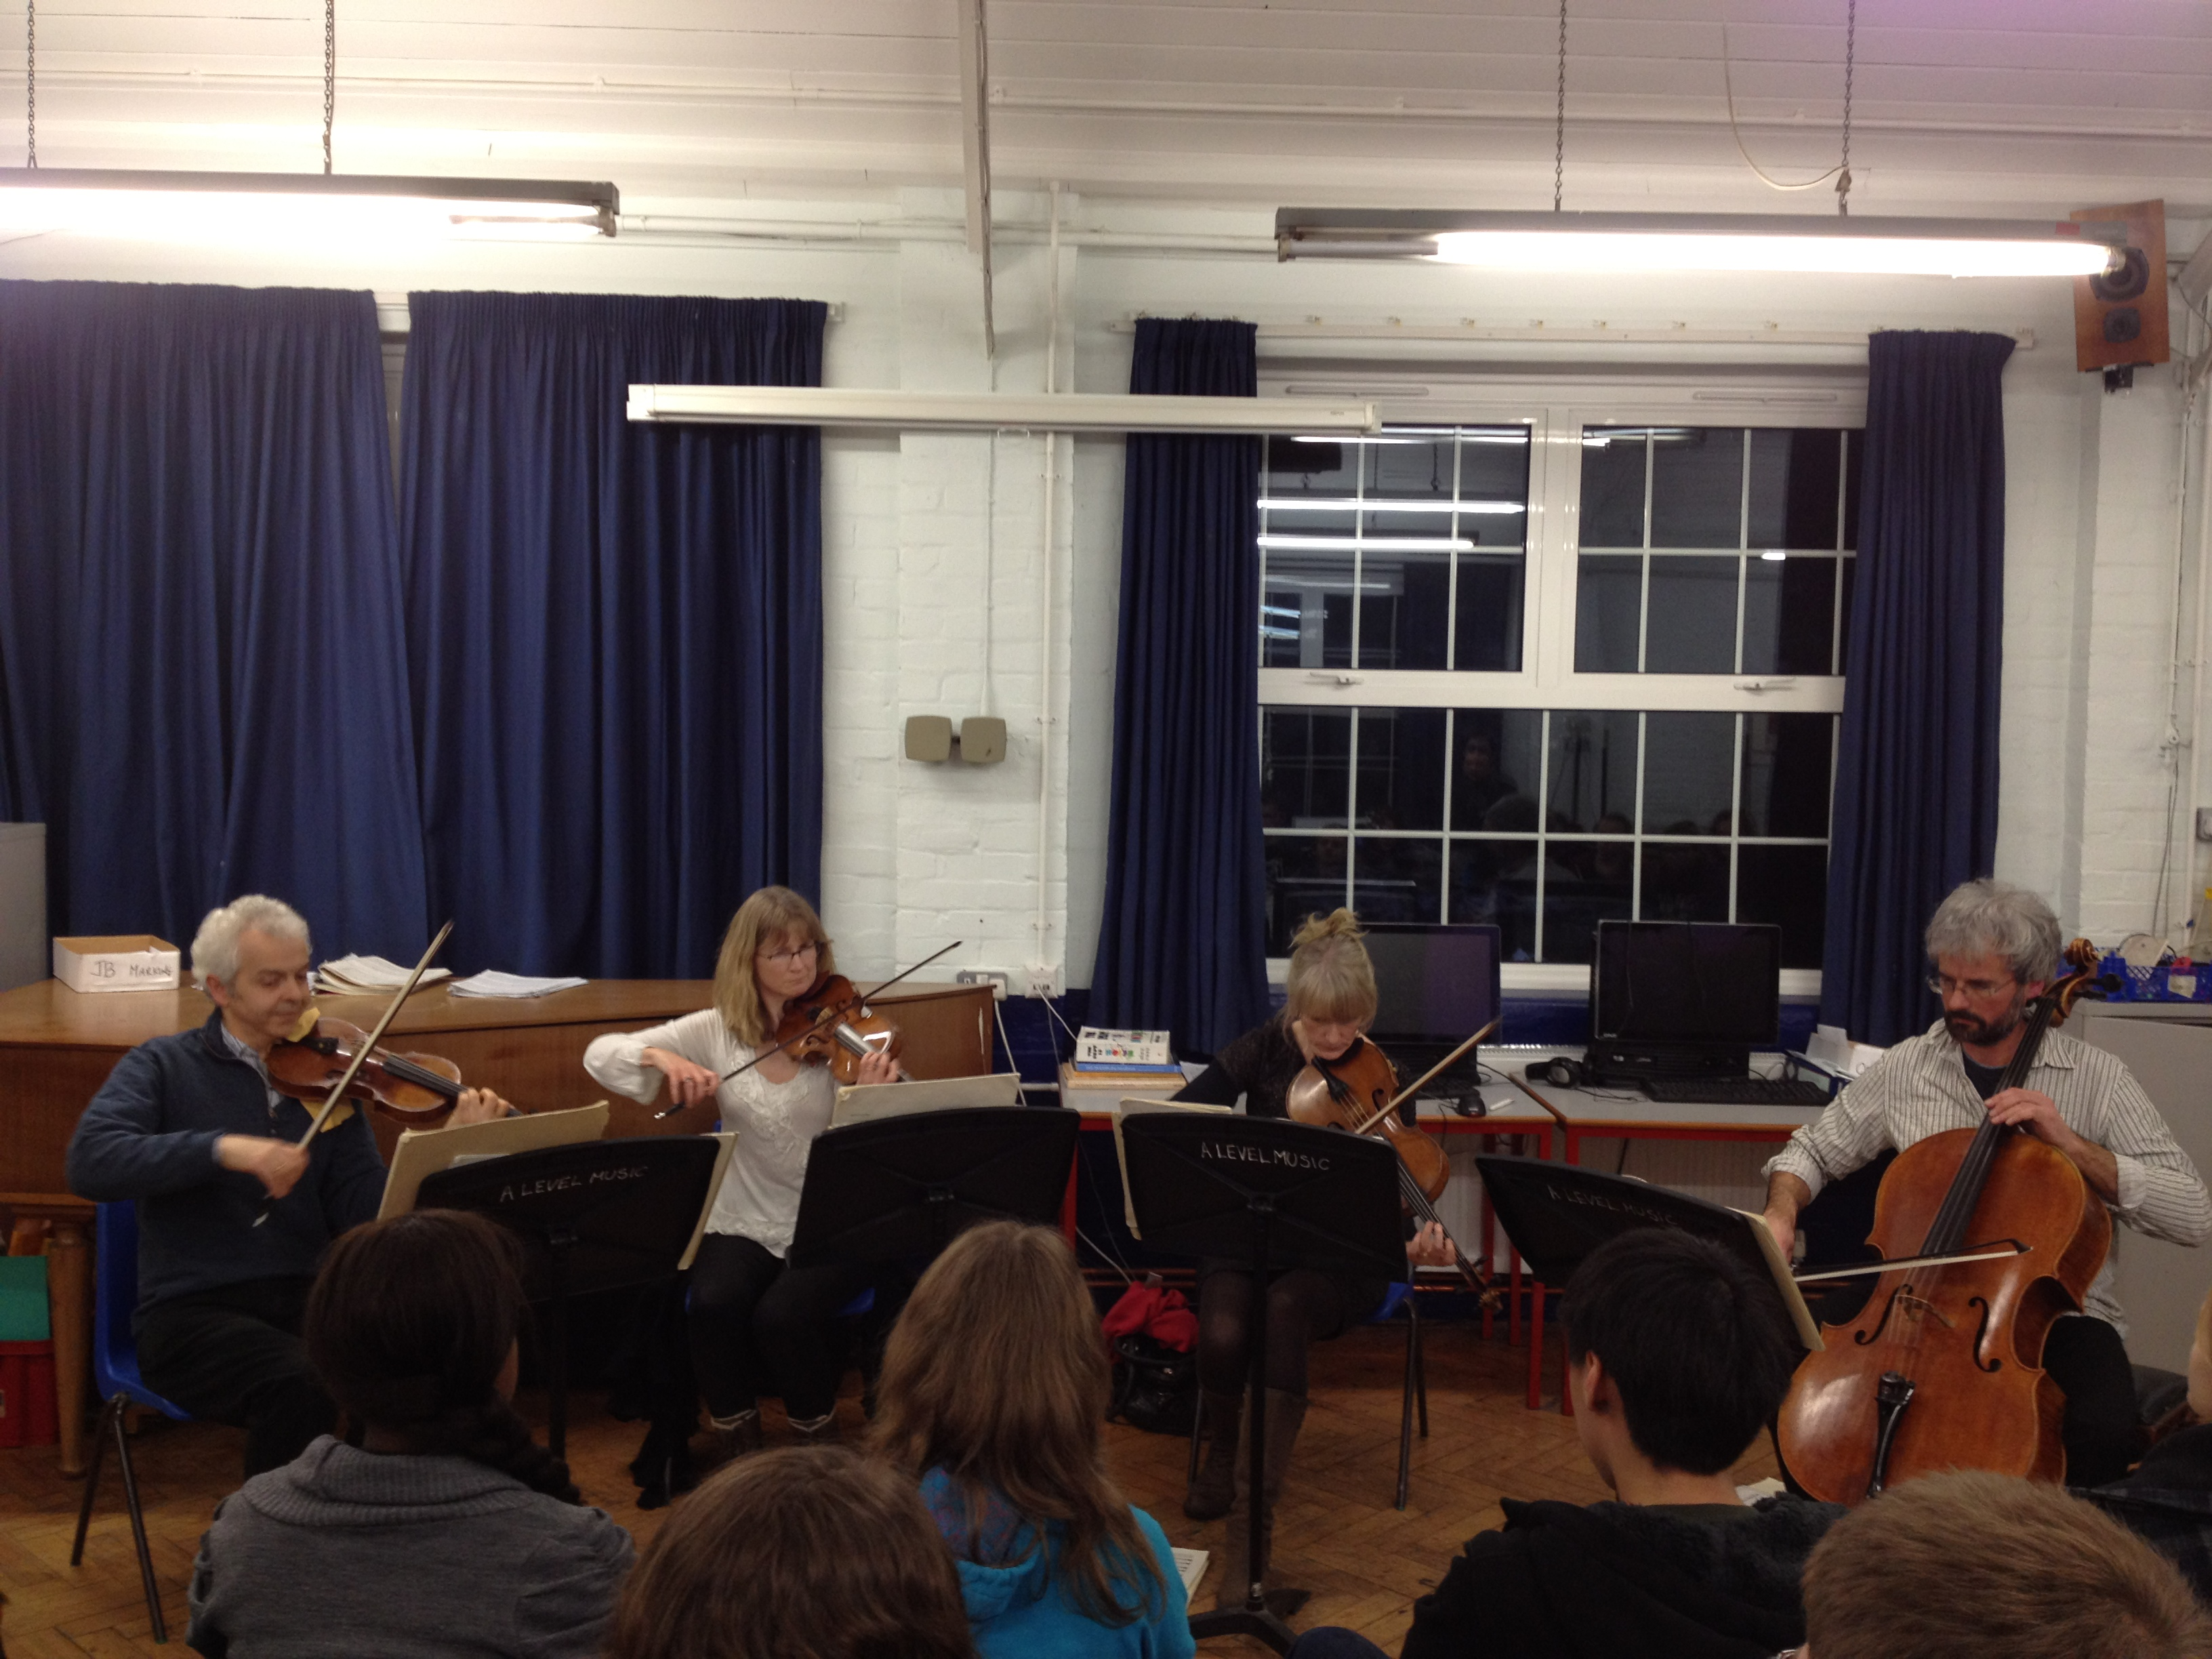 Emperor String Quartet comes to Woodhouse College